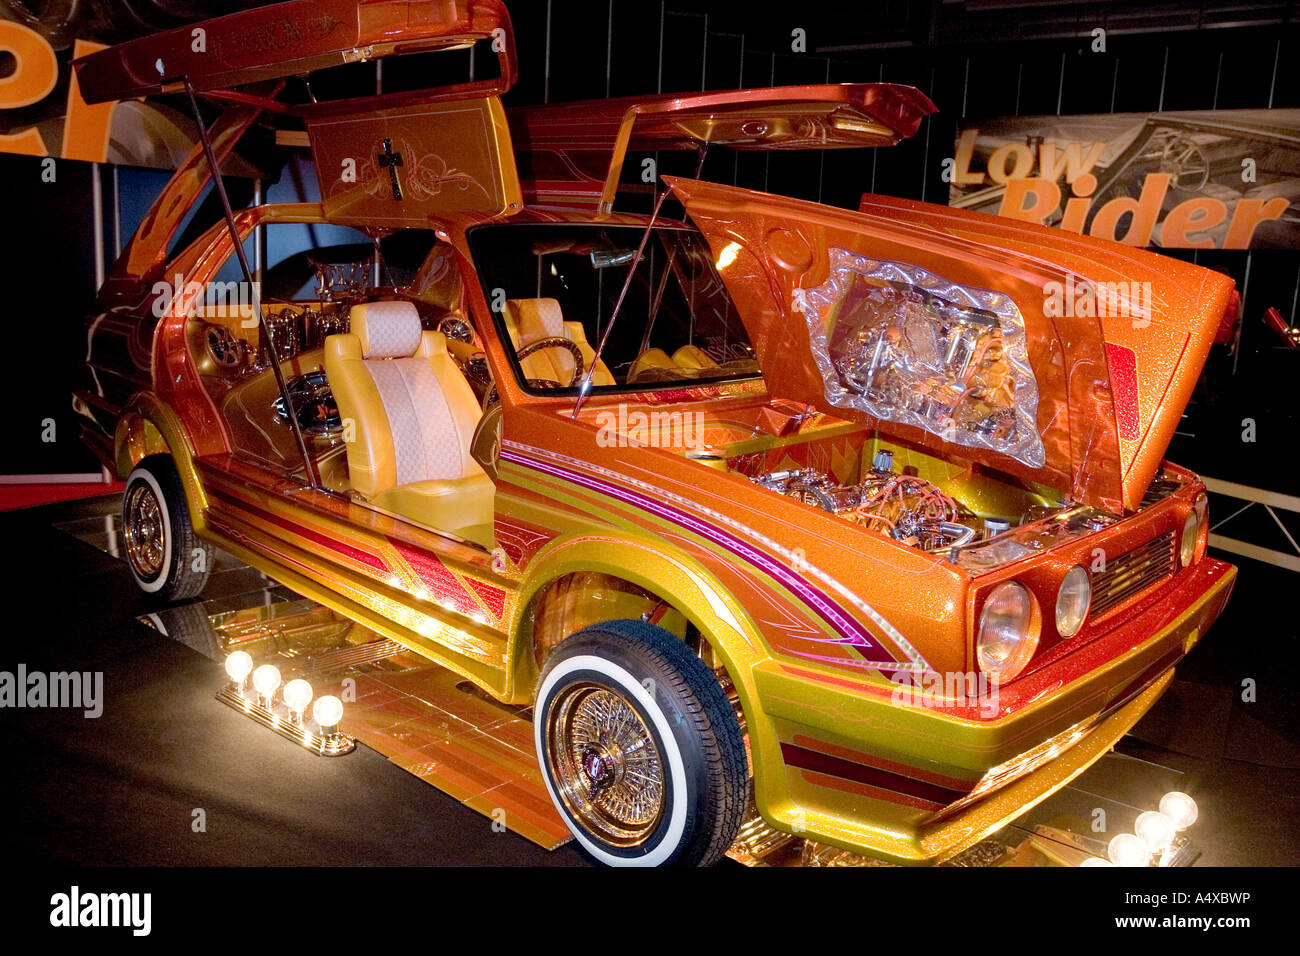 lowrider car stock photos lowrider car stock images alamy. Black Bedroom Furniture Sets. Home Design Ideas